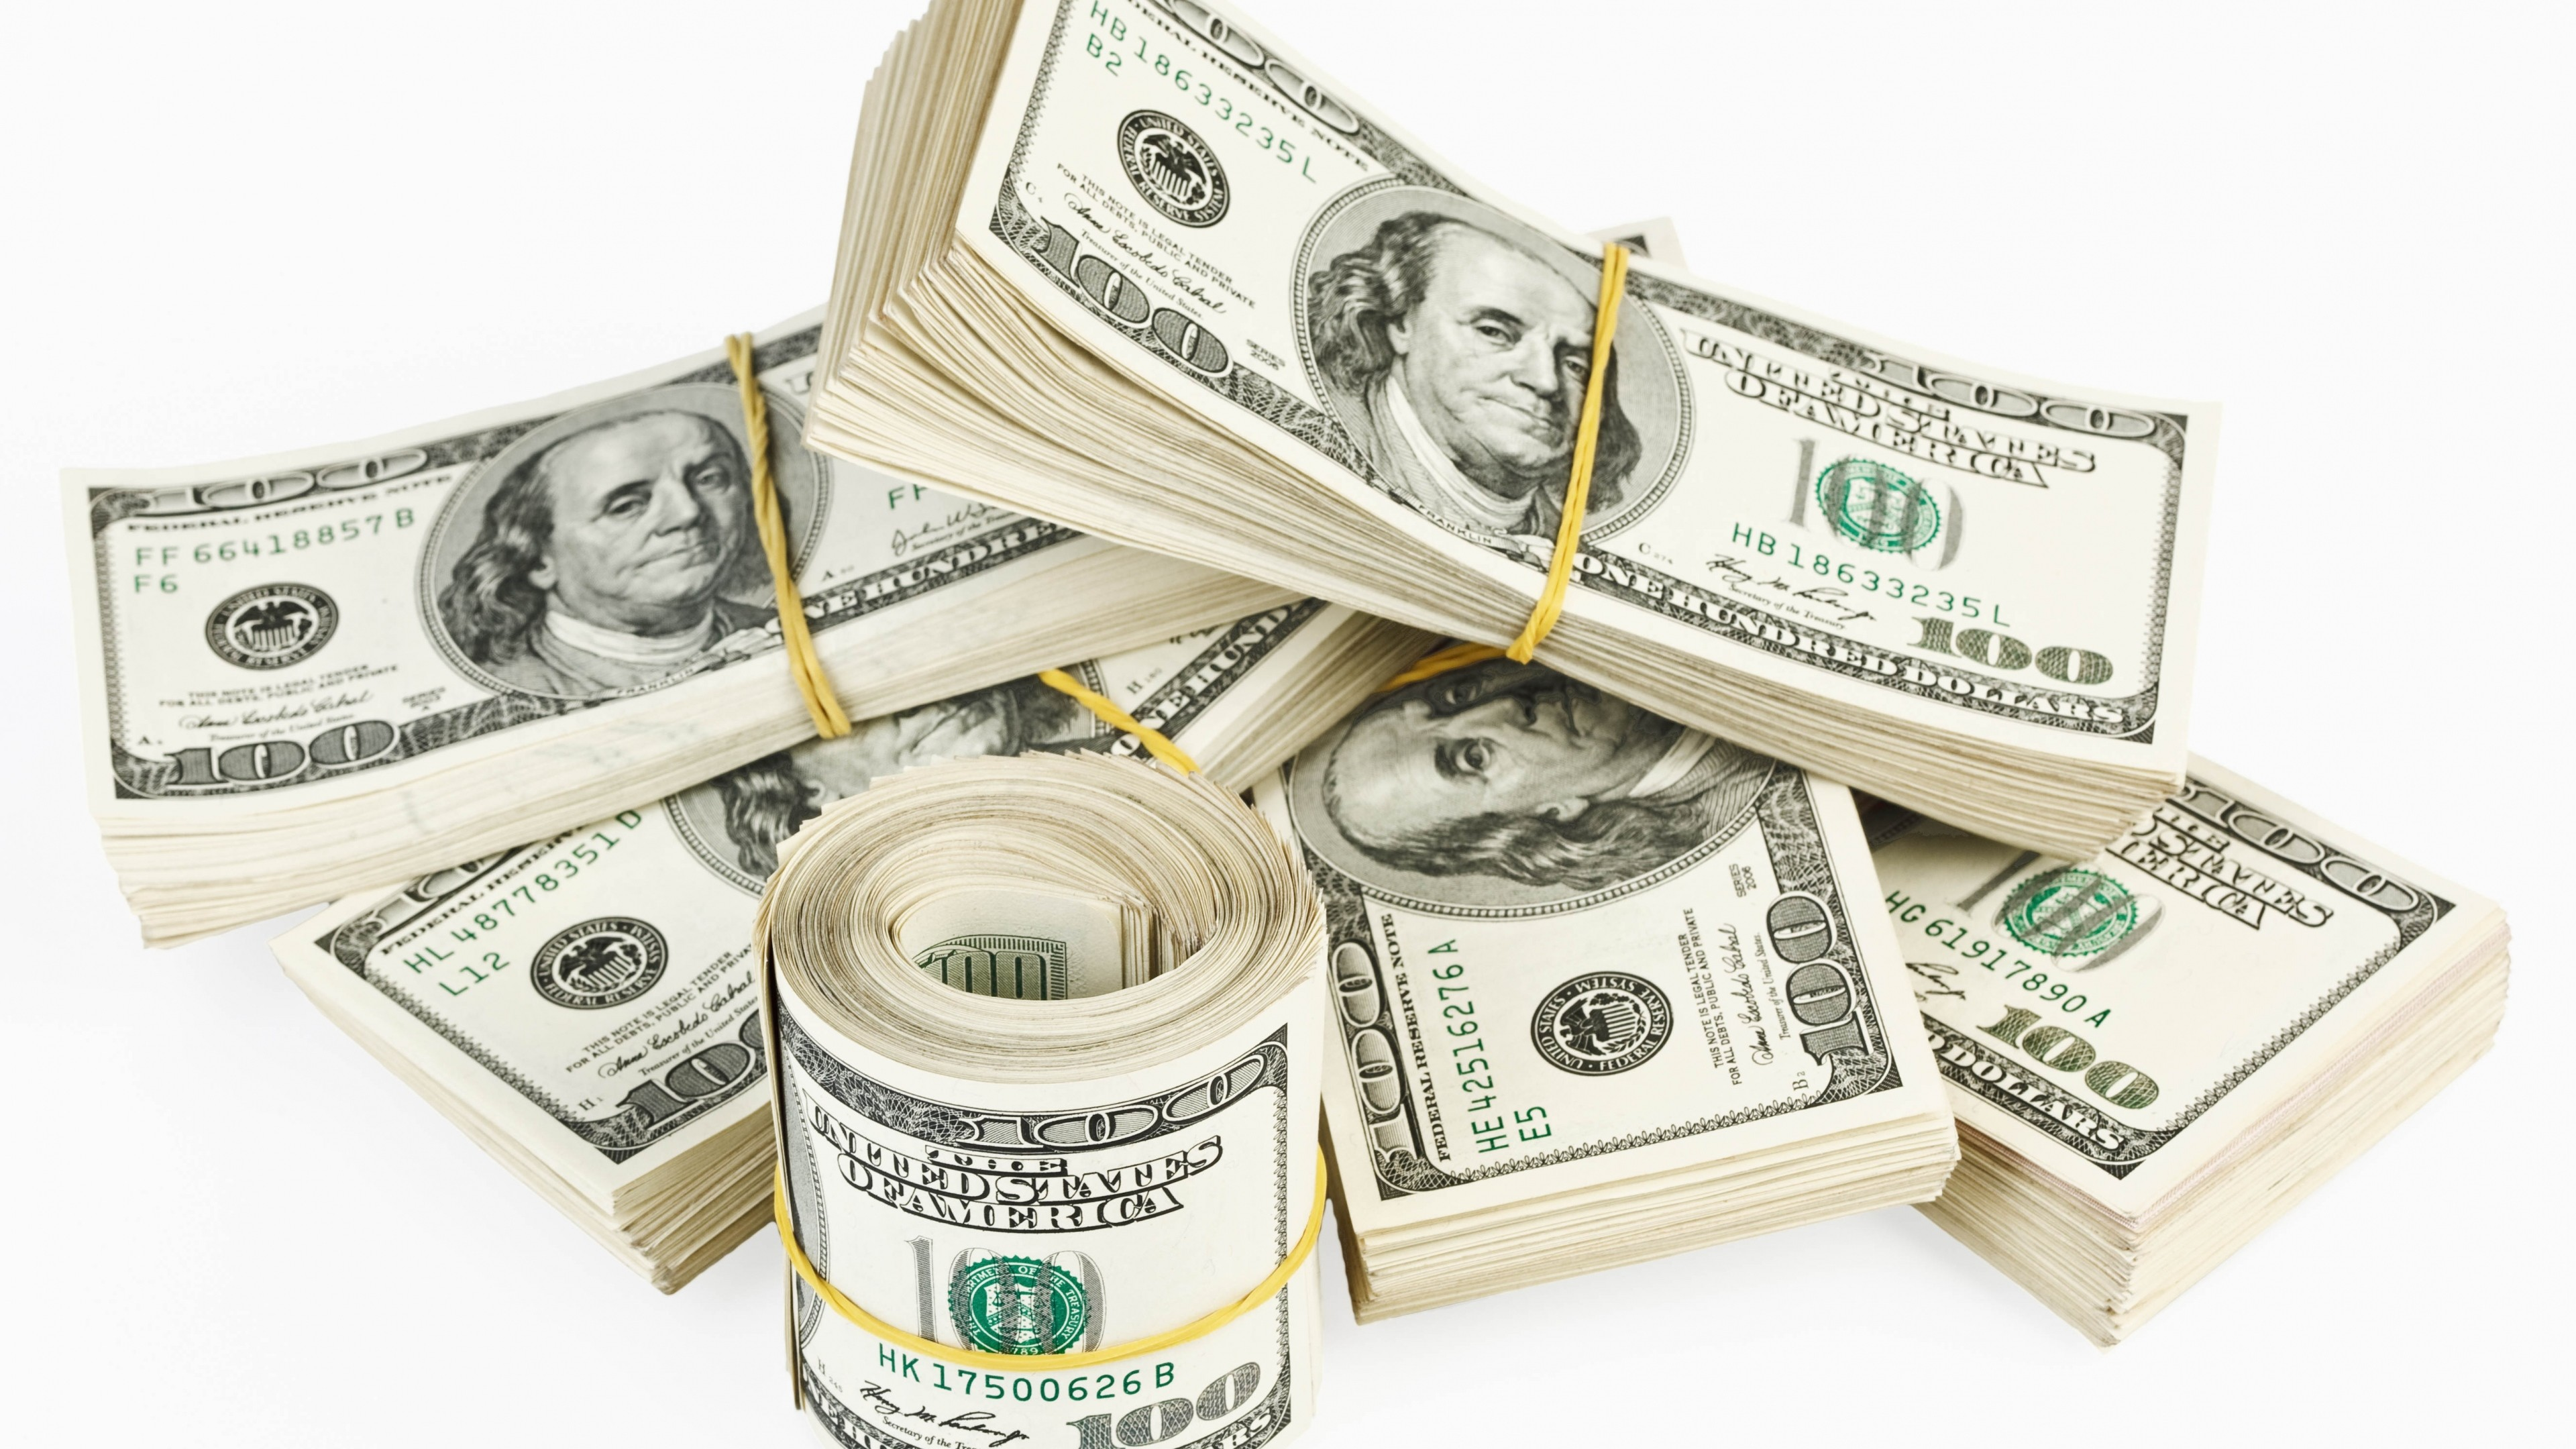 3840x2160 Preview wallpaper dollar, money, pack, white background